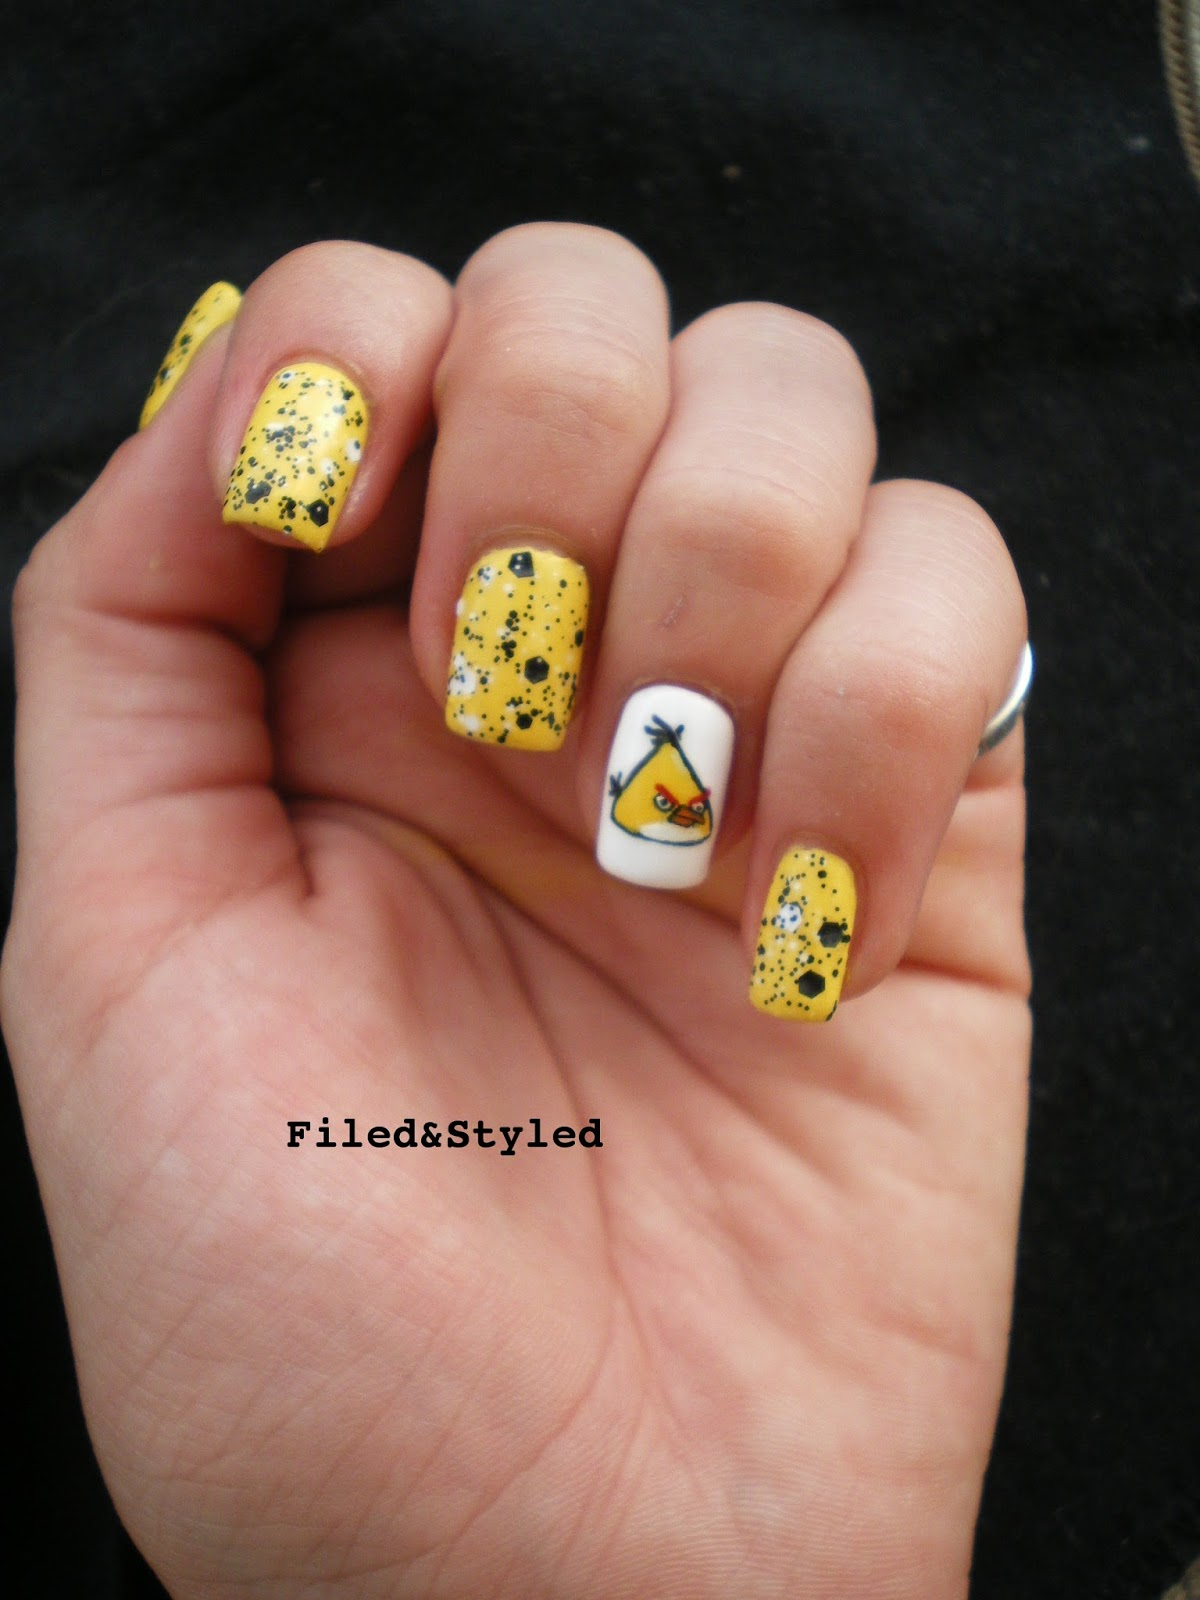 31dc2013 Yellow Nails | Filed & Styled Filed & Styled: 31dc2013 ...